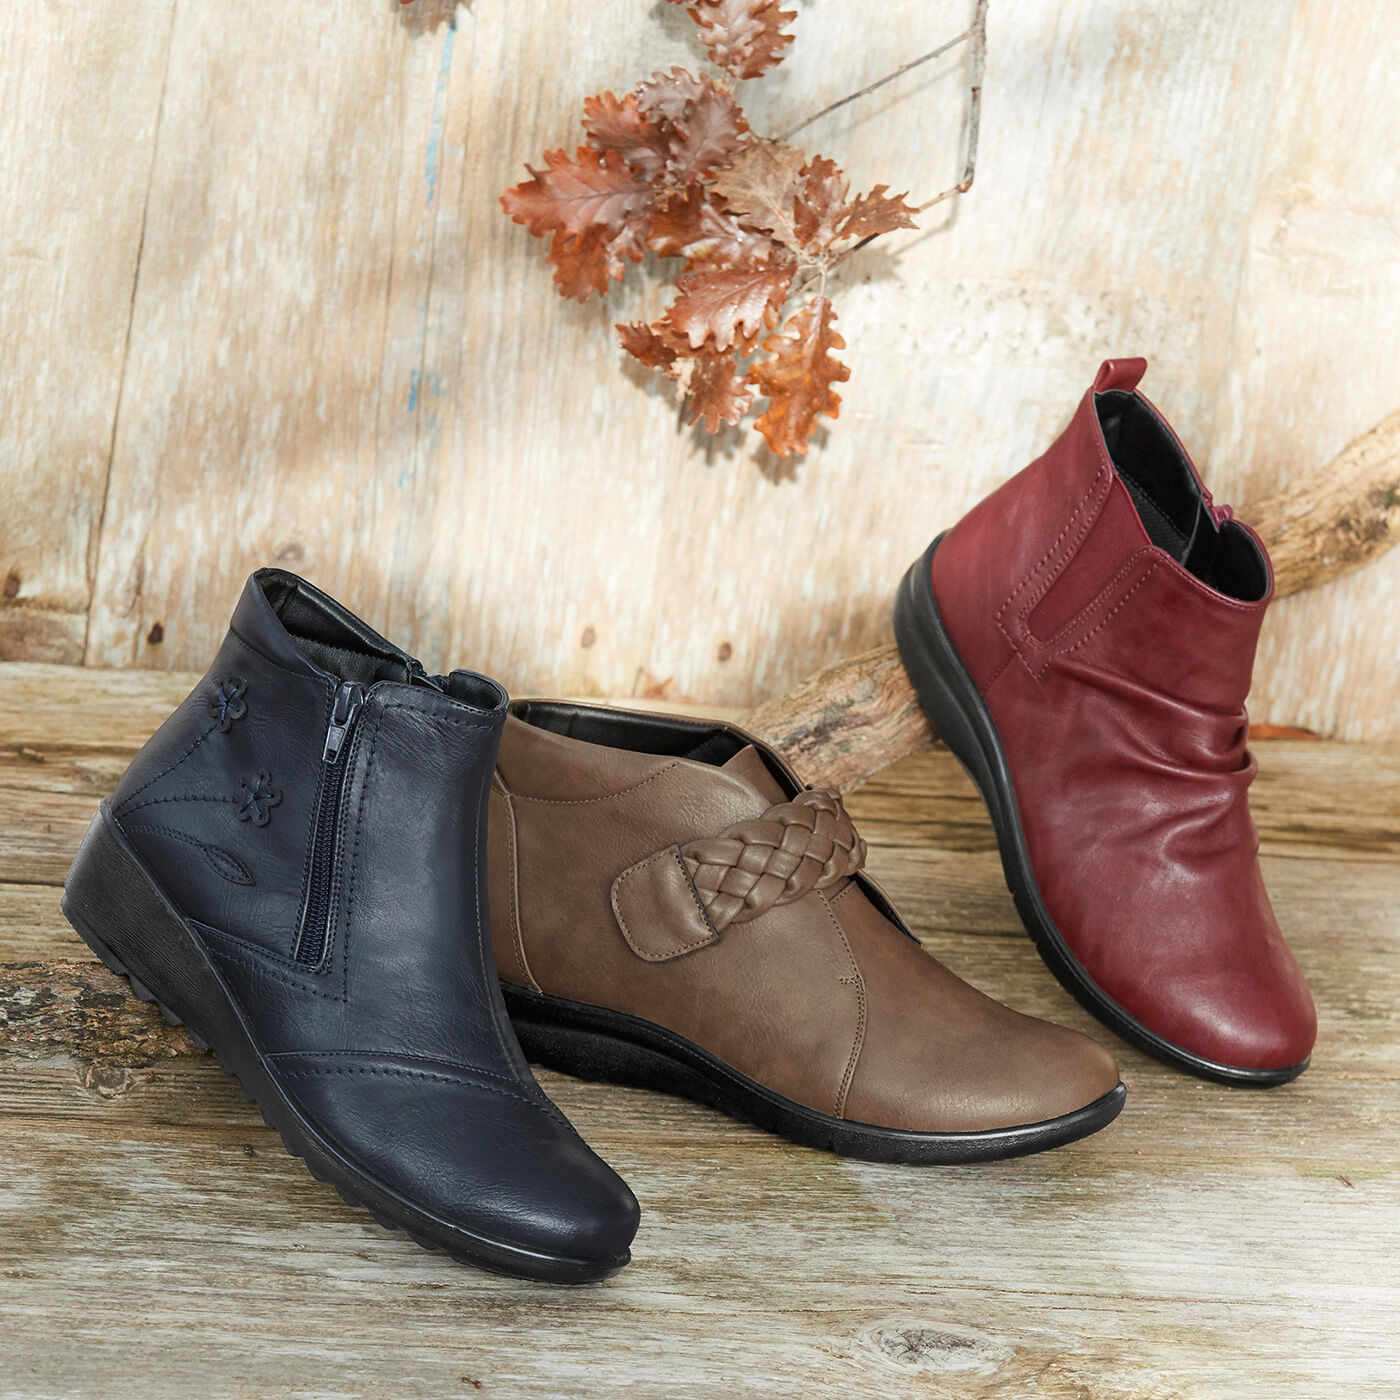 Inspire Me | Autumn Footwear | Flexisole Collection | Flexisole Flower Detail Boots | Flexisole Plaited Strap Boots | Flexisole Slouch Boots | By Cotton Traders